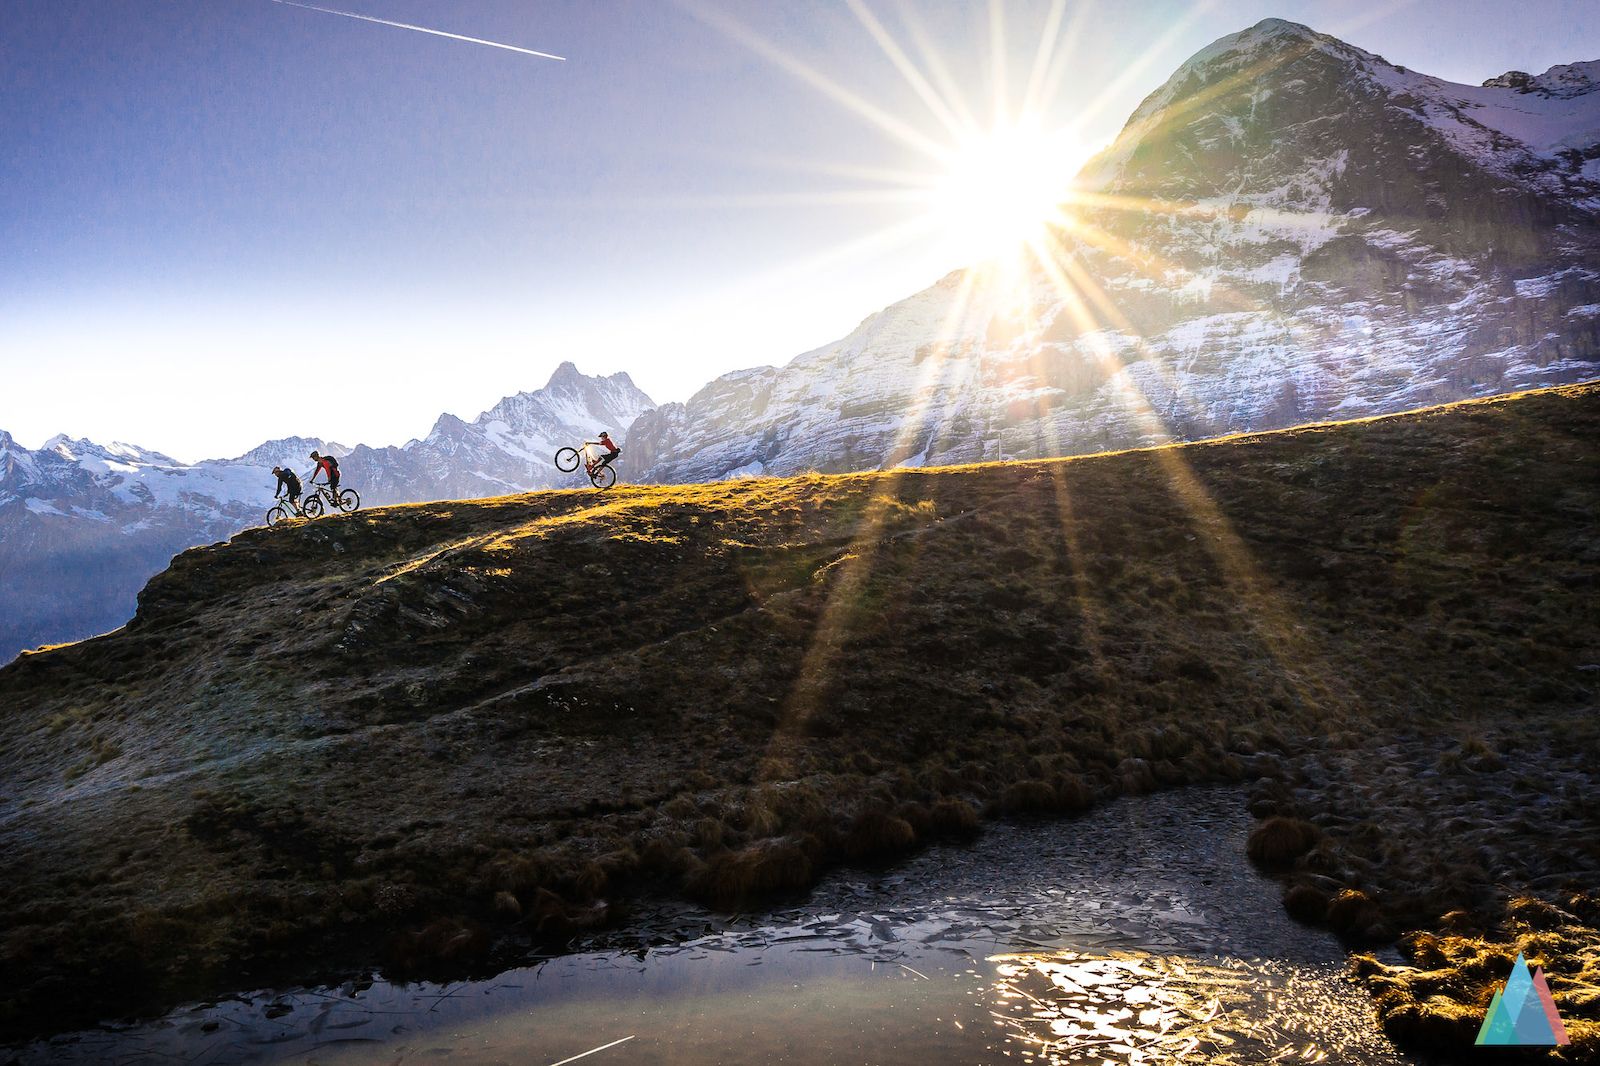 photo: outsideisfree.ch / autumn morning in front of the Eiger Northface pimped with a manual. Can't say no to that.